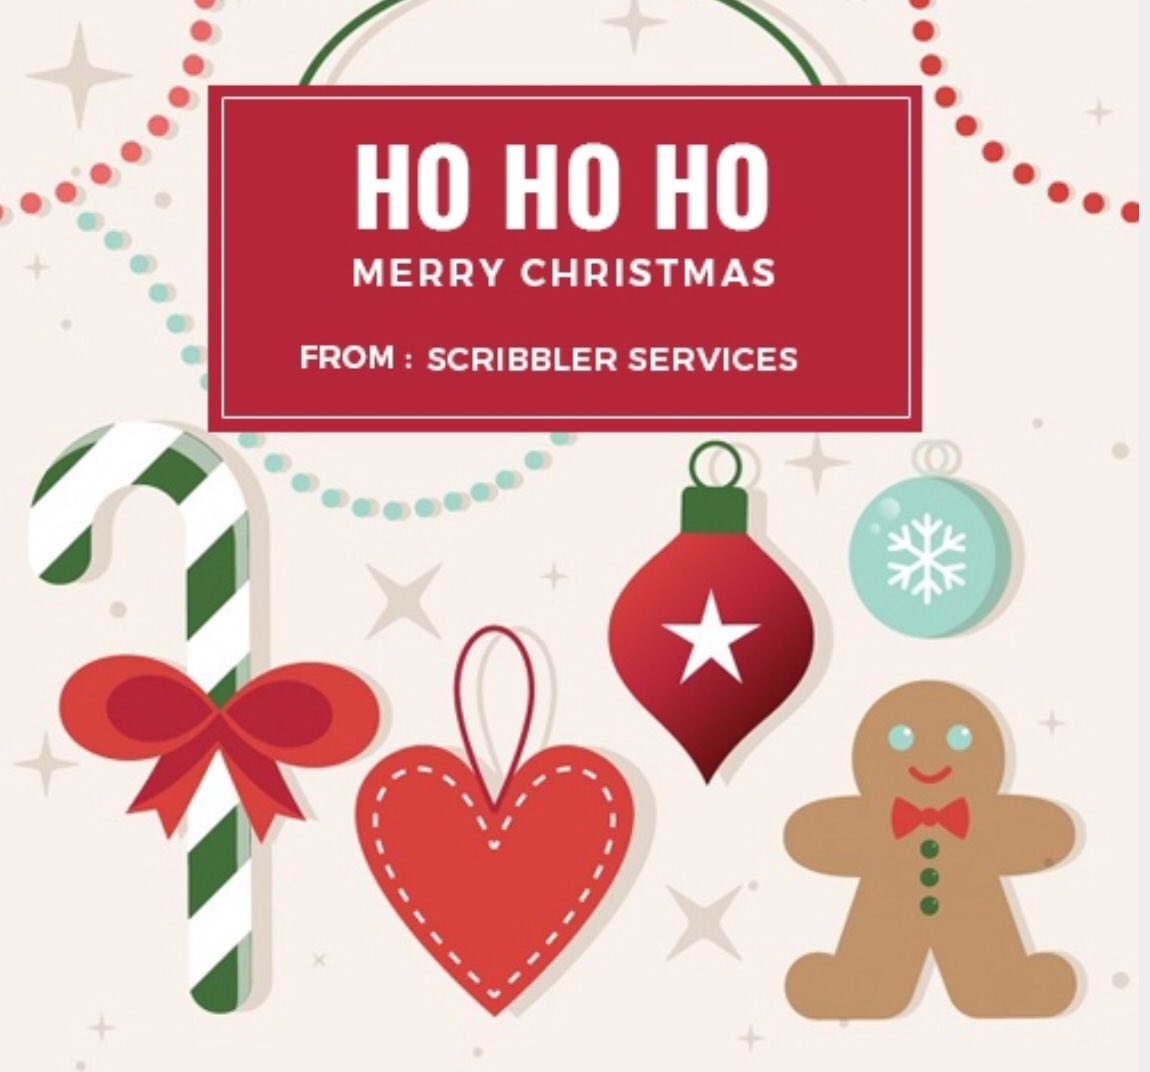 may your day be merry and bright and full of inspiration writers freelanceeditor editing scribblerservices merrychristmas happyholidays